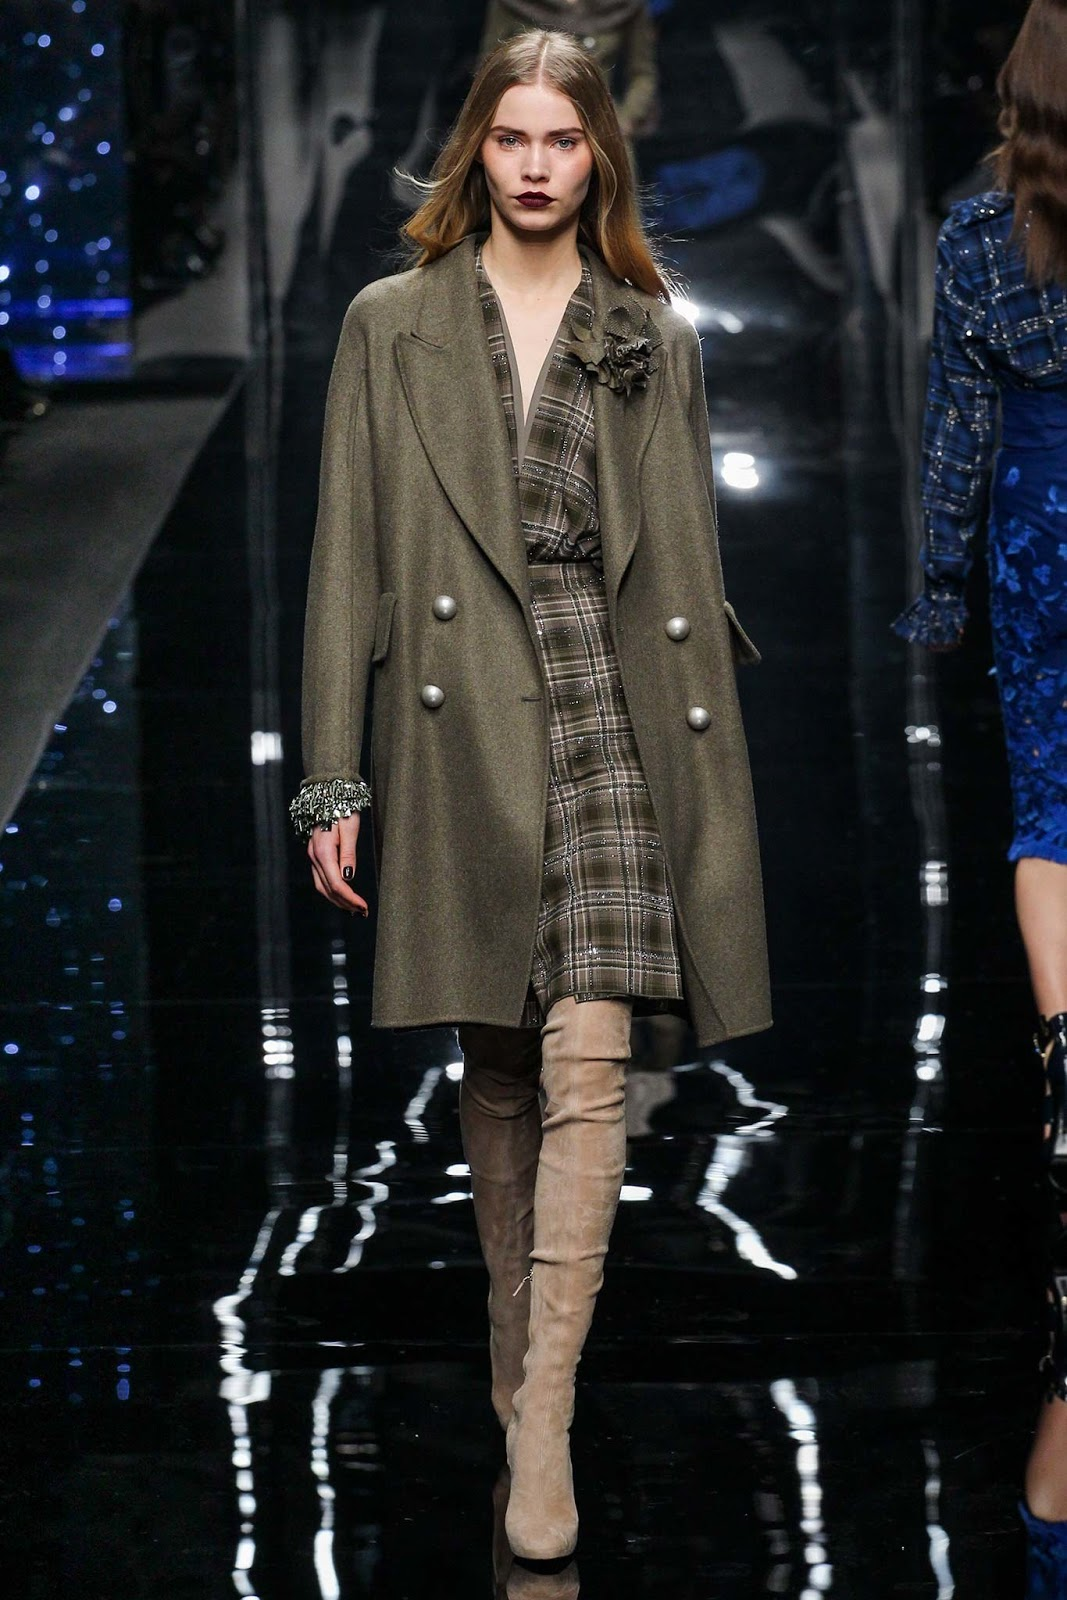 Over the knee boots on Fall/Winter 2015 runway at Ermanno Scervino via www.fashionedbylove.co.uk